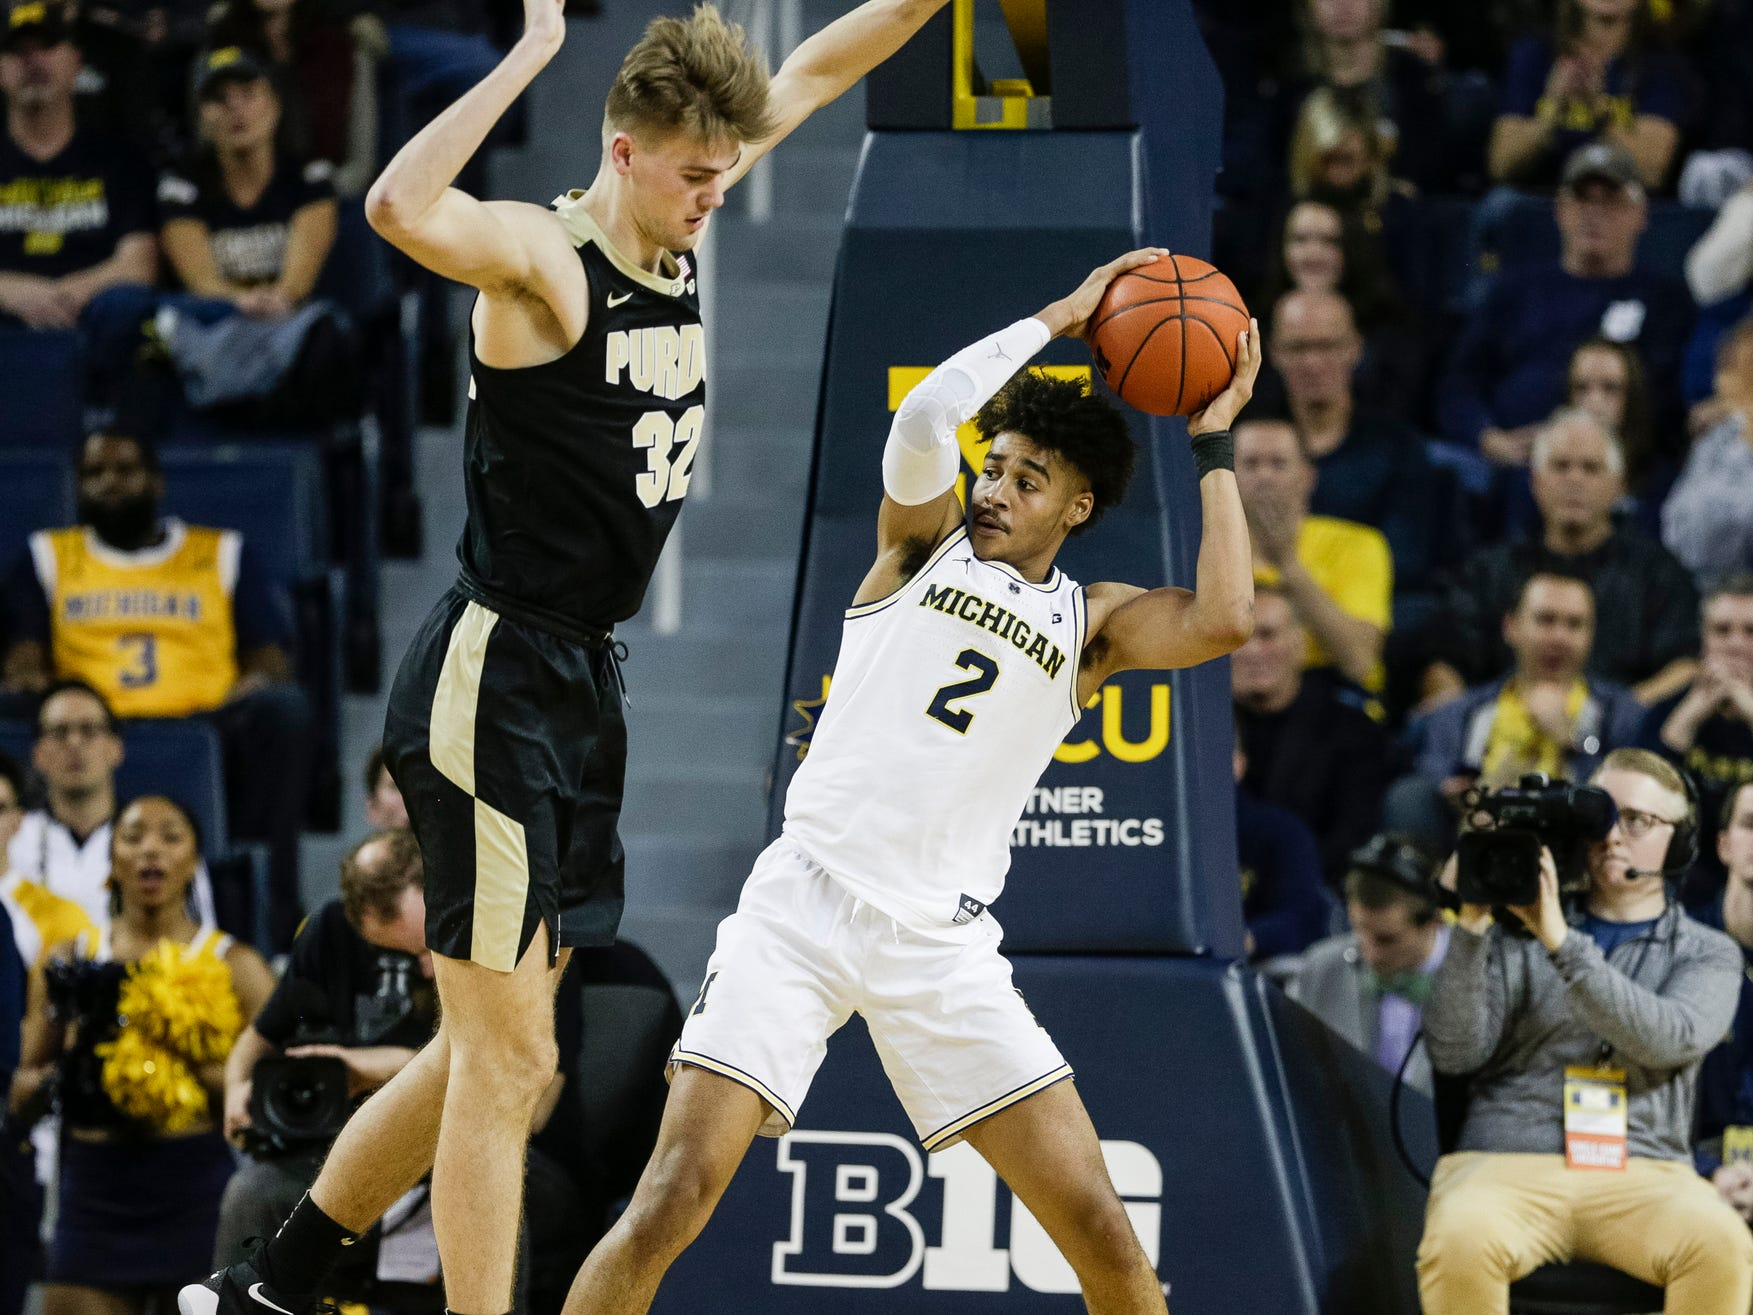 Michigan guard Jordan Poole (2) tries to pass the ball after getting a defensive rebound against Purdue center Matt Haarms (32) during the first half at Crisler Center on Saturday, Dec. 1, 2018.